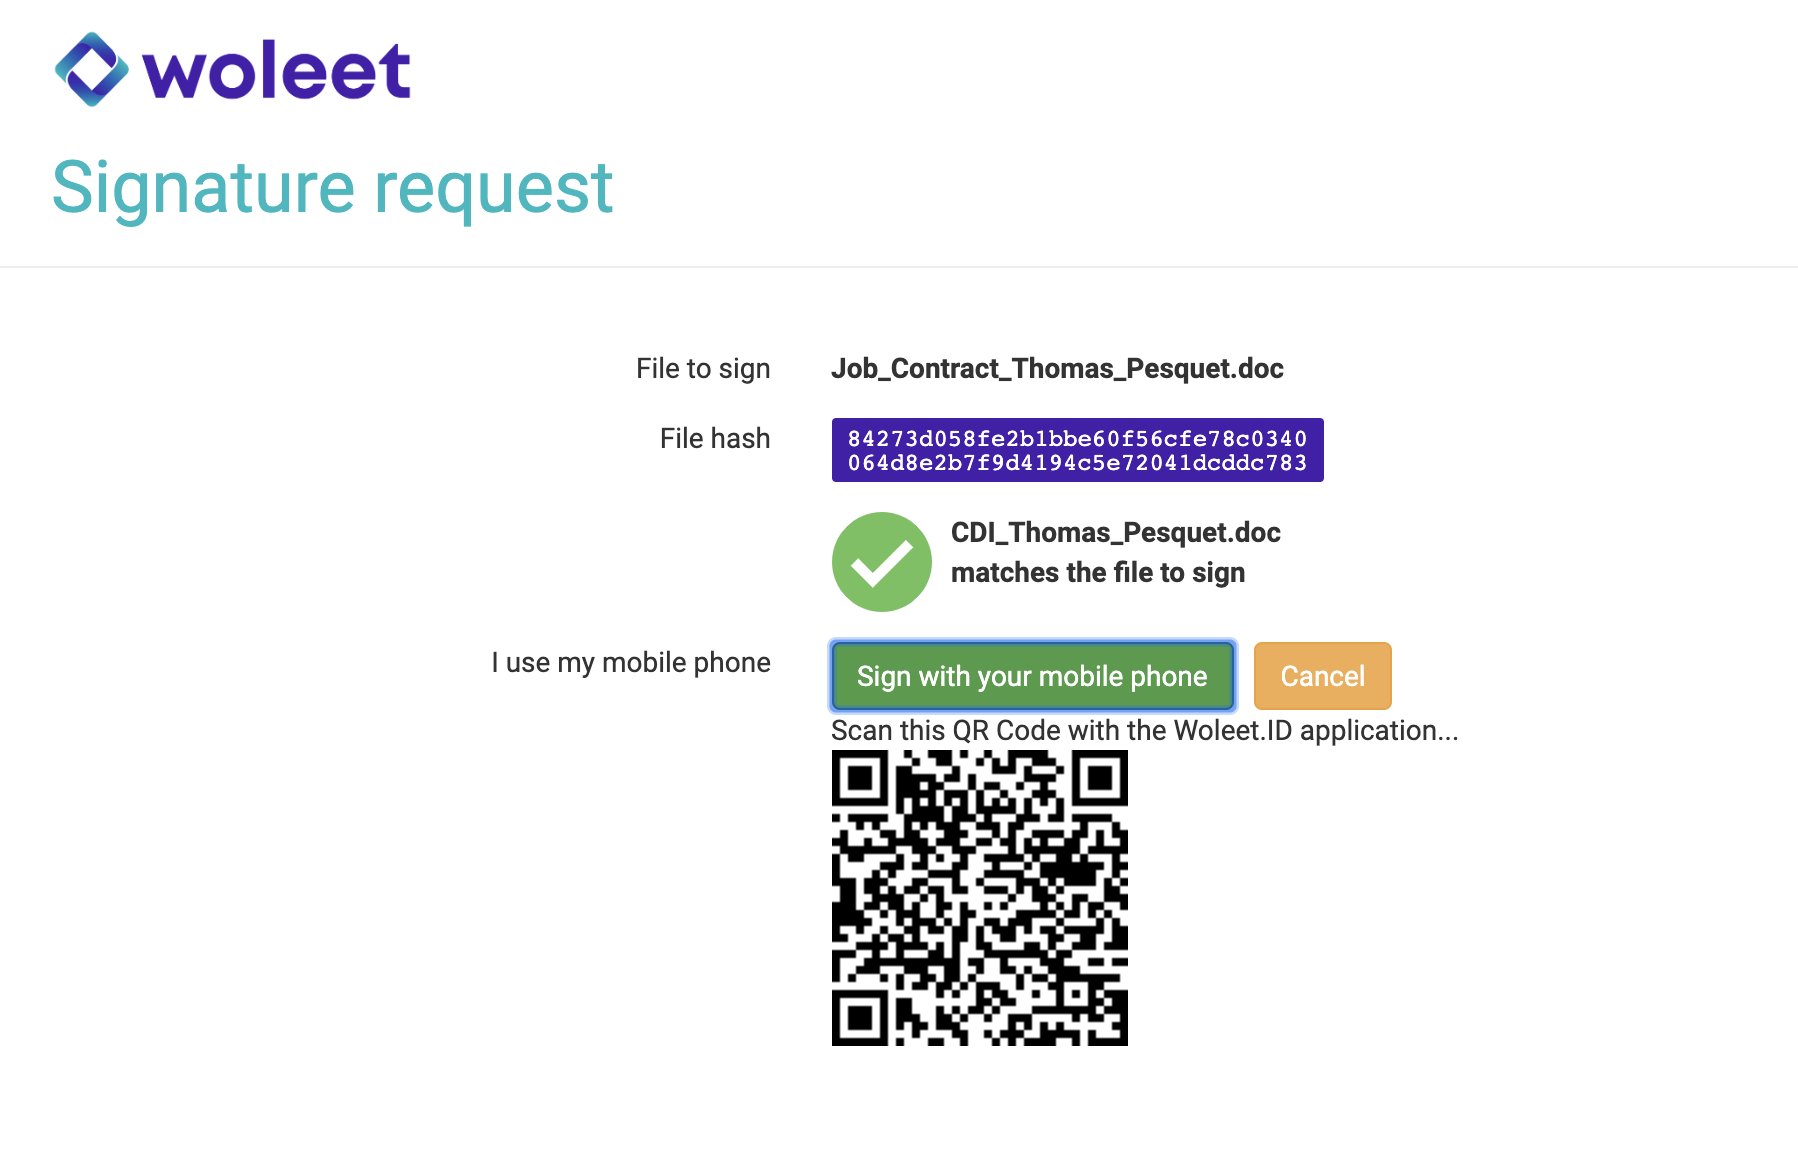 Computer view - Scan the QR Code to sign